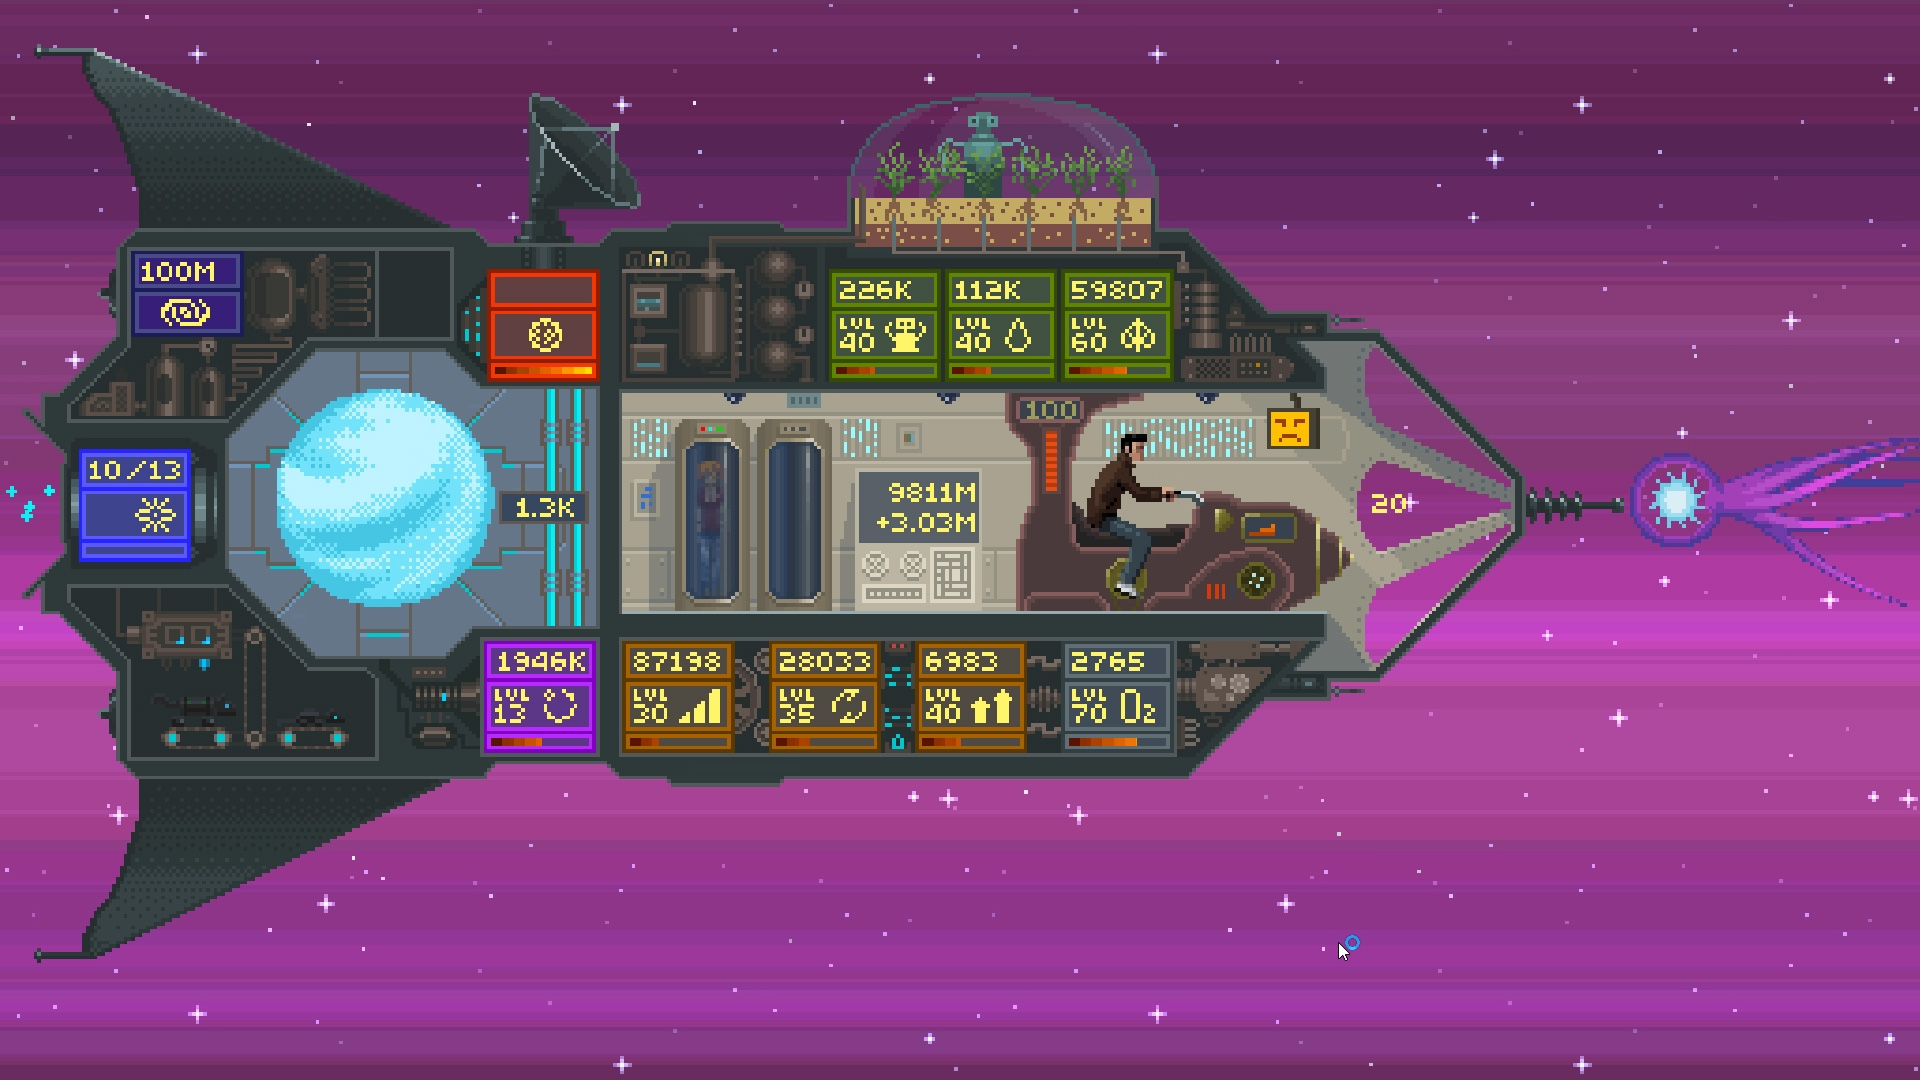 LazyGuysBundle – Steam game Human-powered spacecraft by Shiv for Windows, macOS, Linux and SteamOS available in the Bundle 24: True Mind deal for a cheap price.